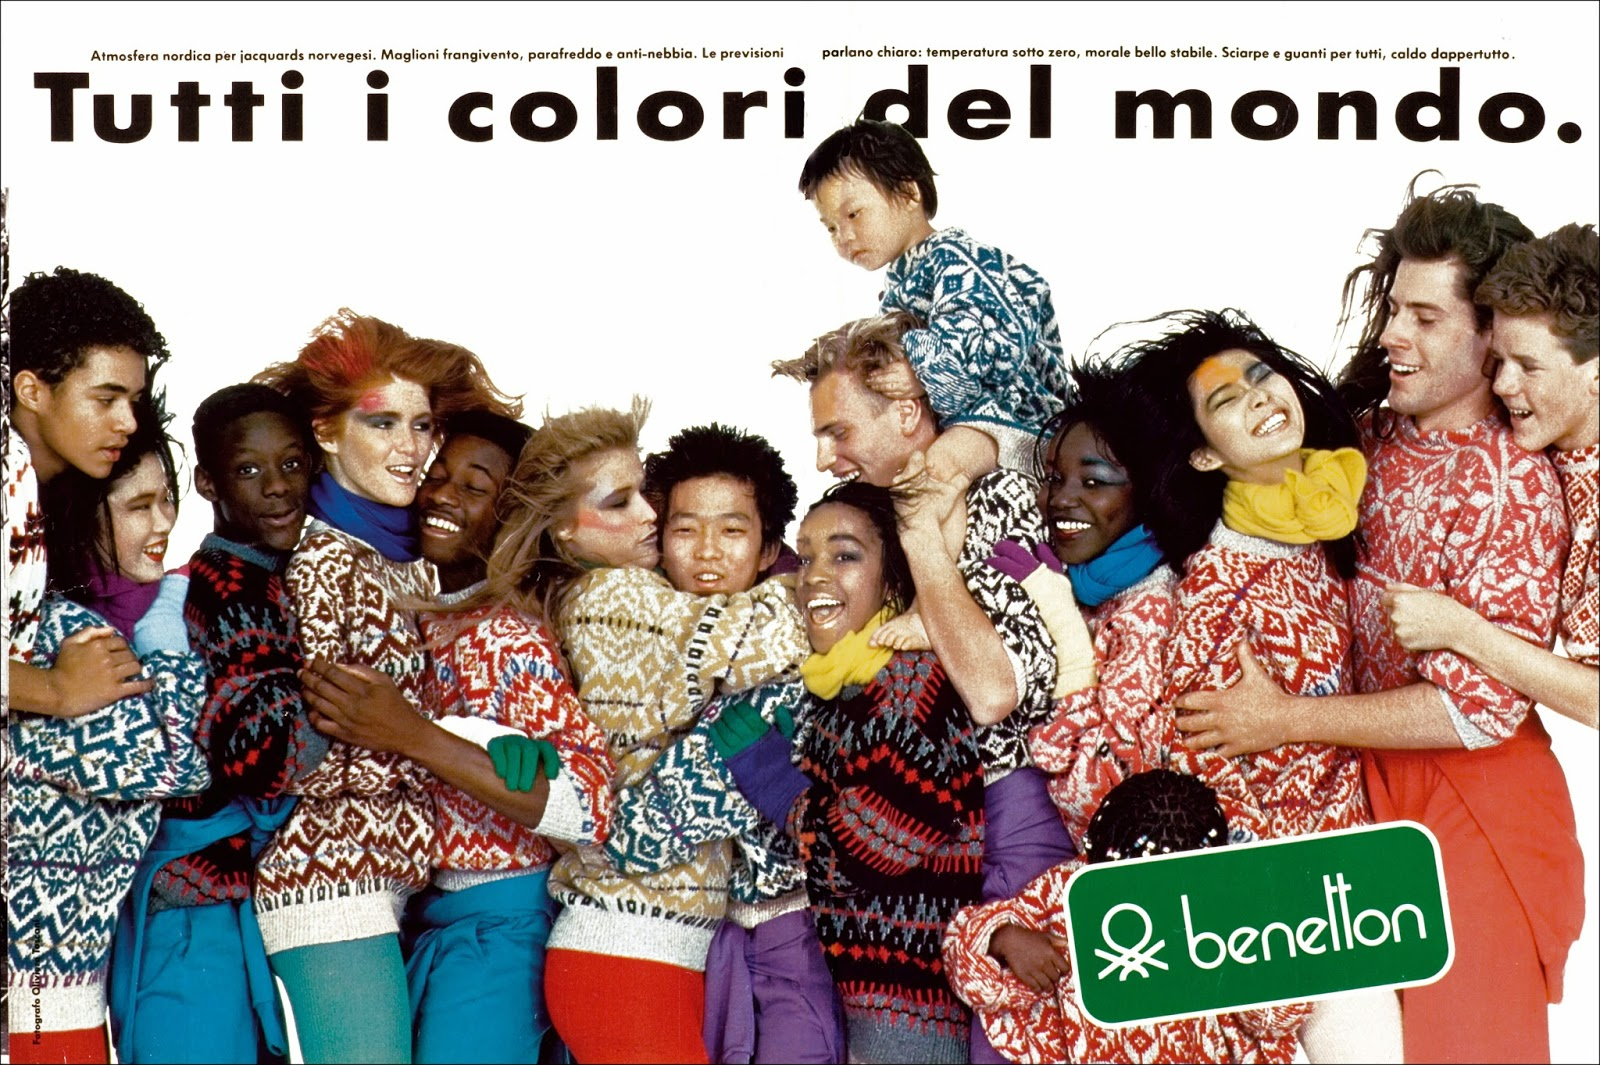 United colors of benetton spring